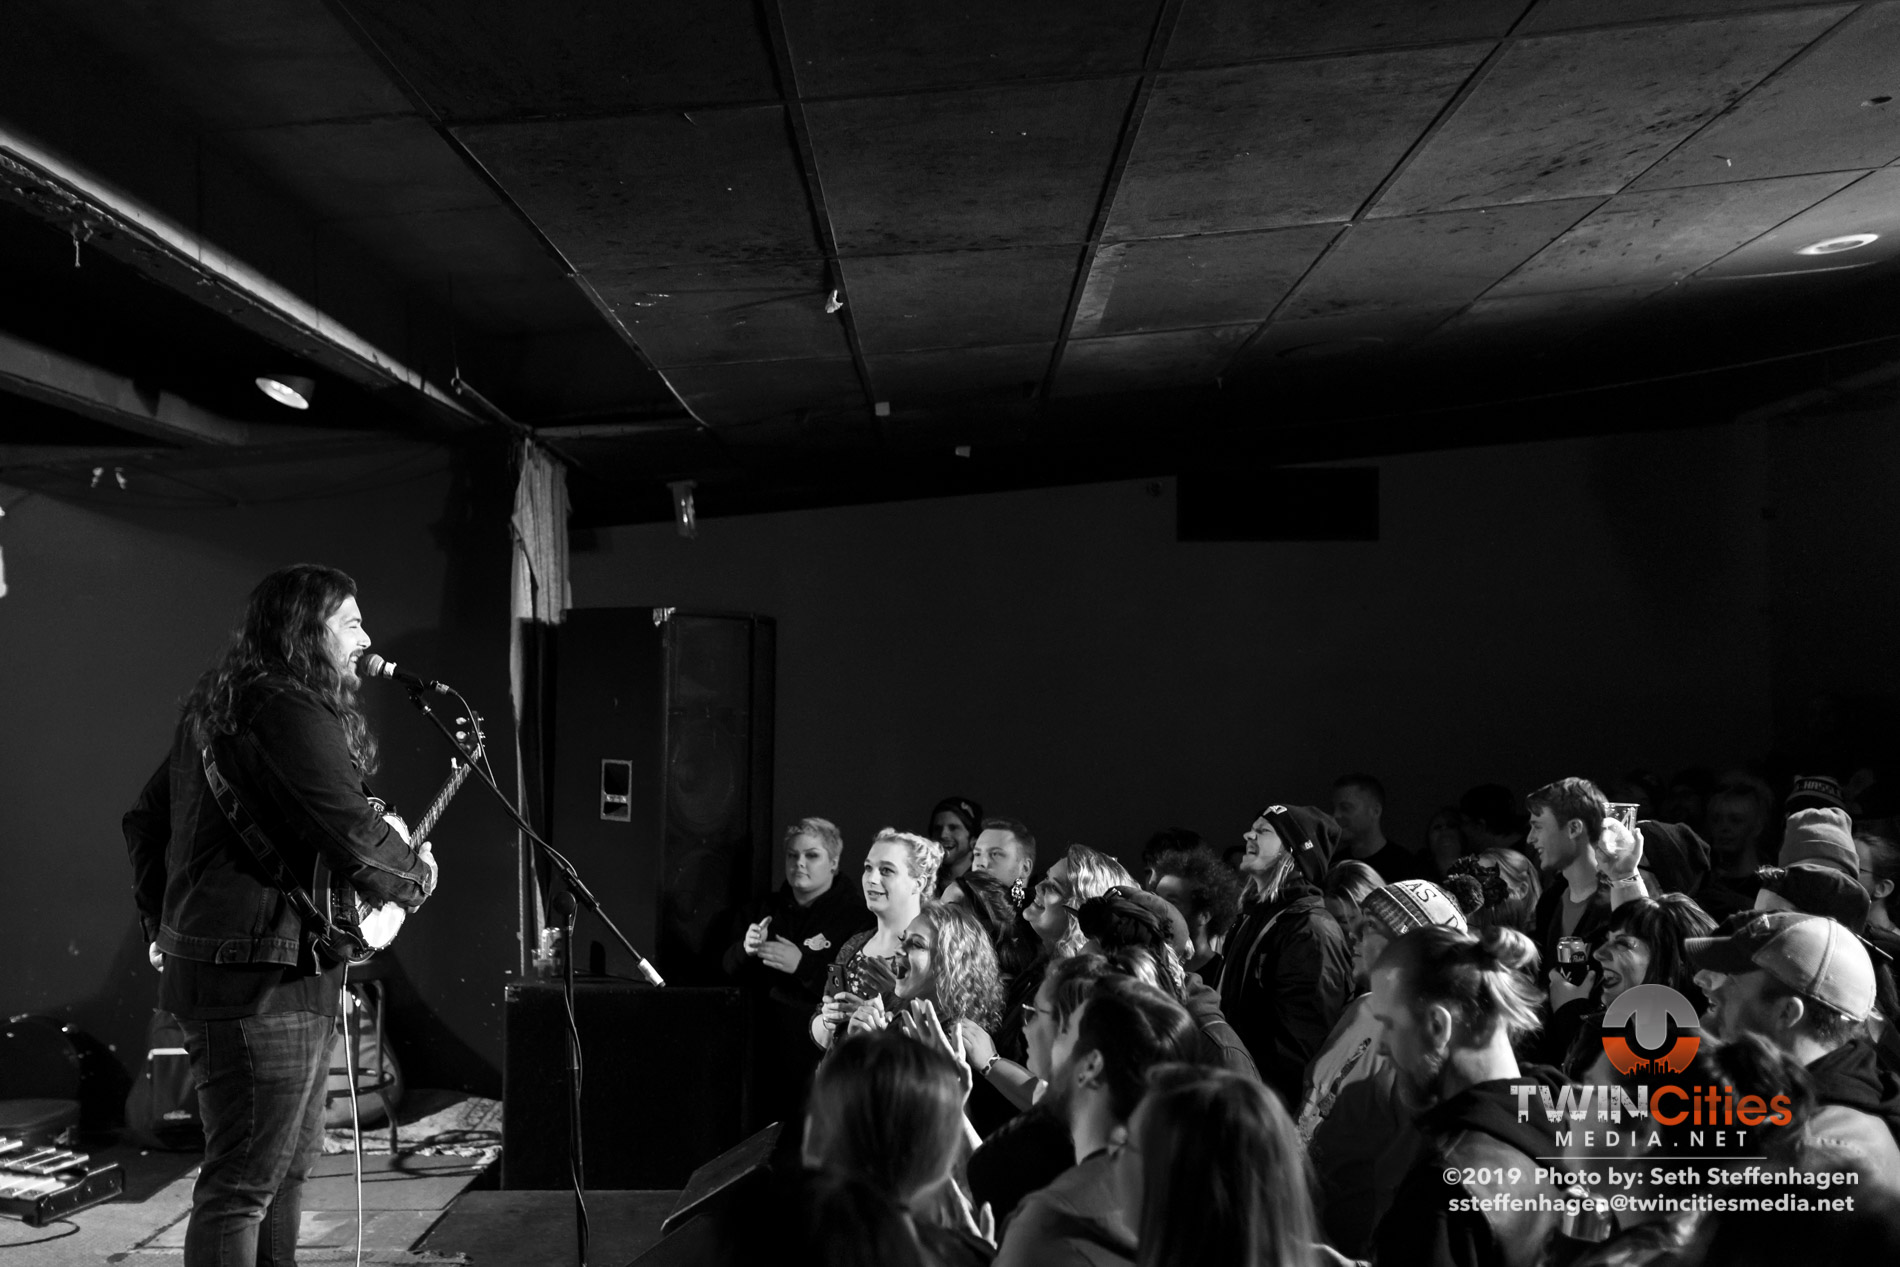 January 16, 2019 - Minneapolis, Minnesota, United States - Amigo The Devil live in concert at the Skyway Theatre, Studio B along with Harley Poe as the opener.  (Photo by Seth Steffenhagen/Steffenhagen Photography)